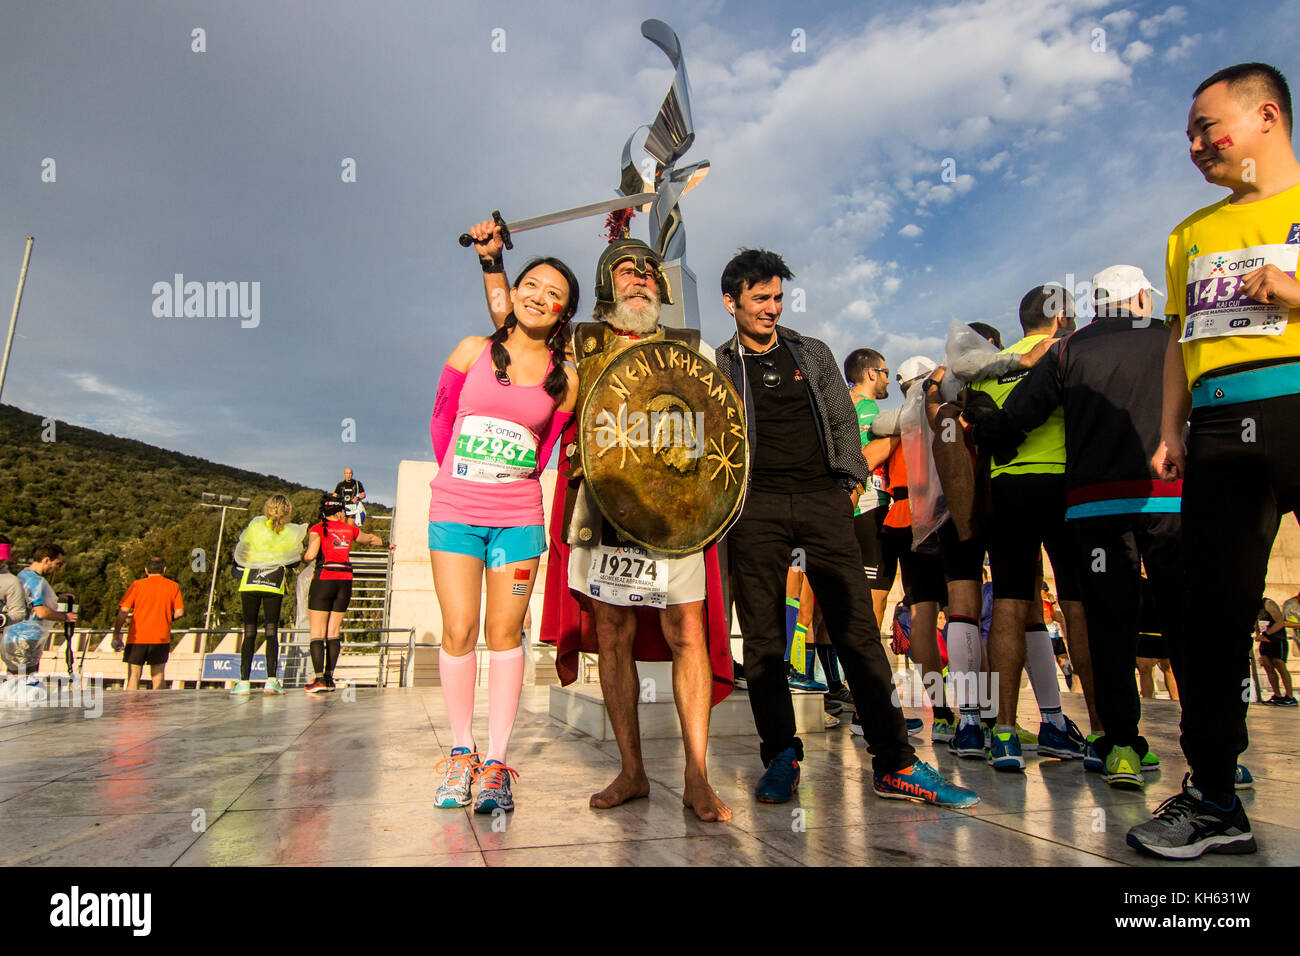 greek and roman sports Roman sports one of the most important attributes of the romans was the ability to assimililate ideas and customs from cultures and societies they had.